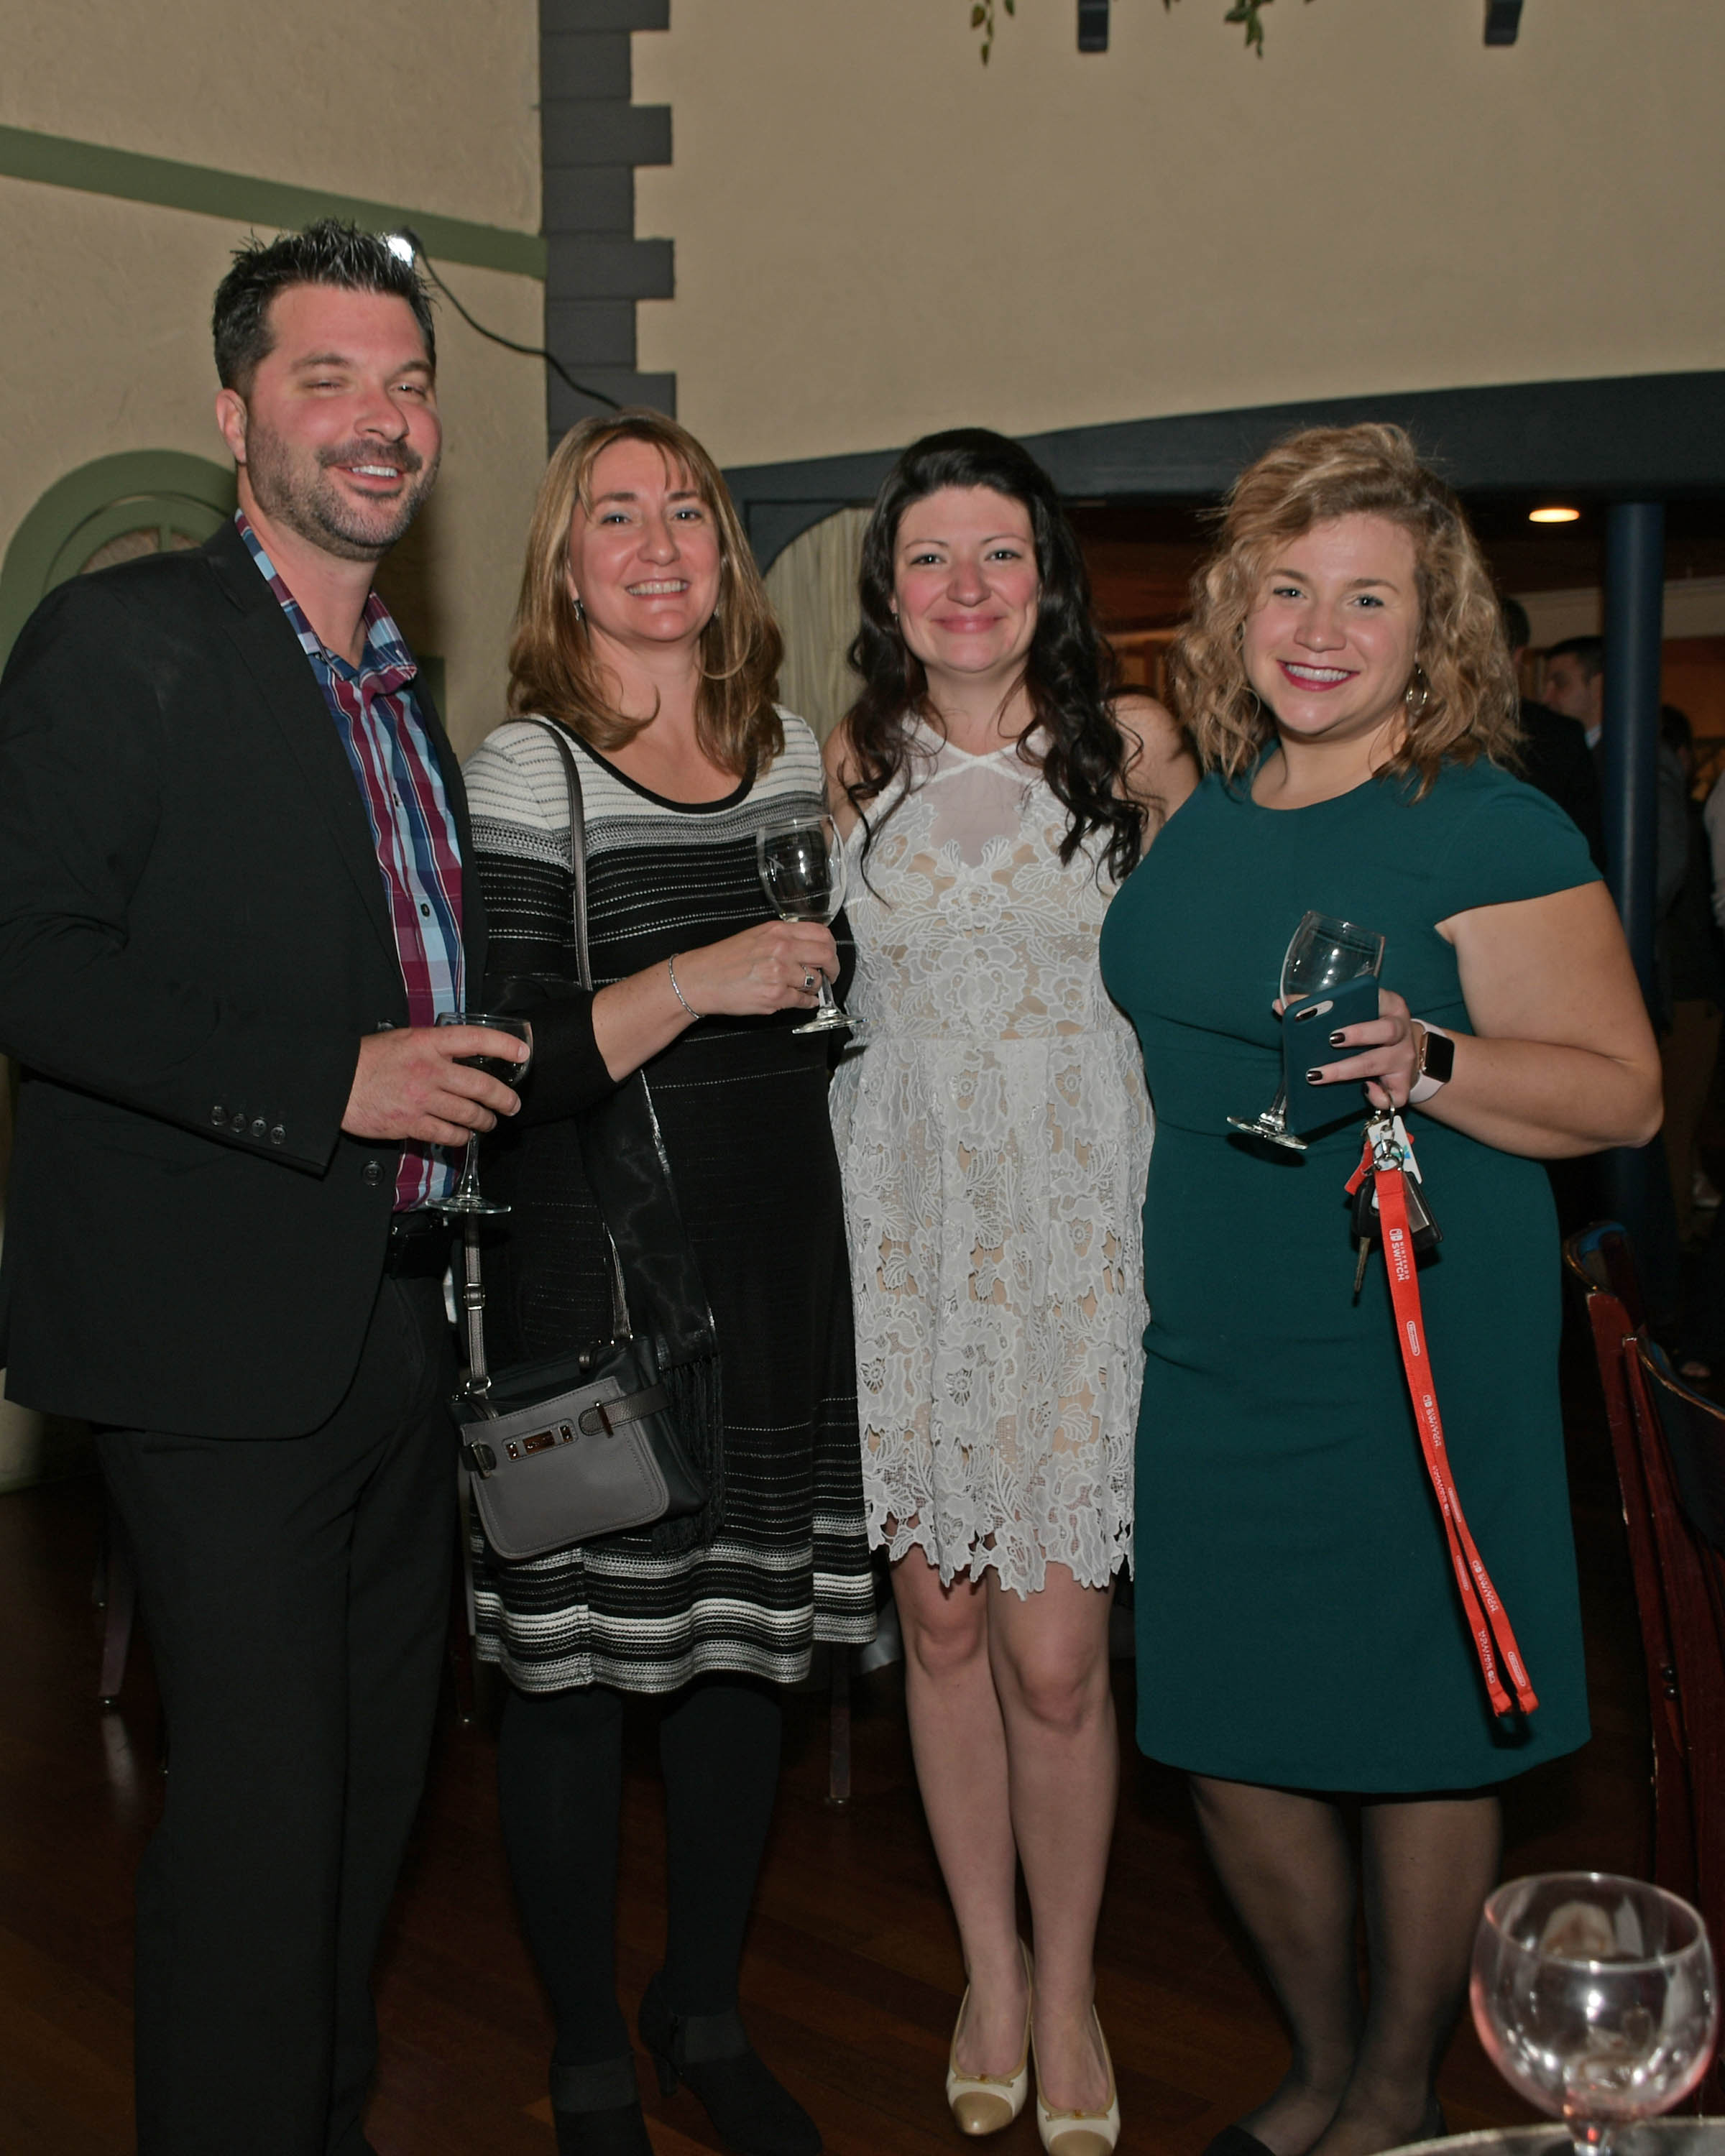 Vin Le Soir to benefit AIM Services, Inc. four people at AIM wine event